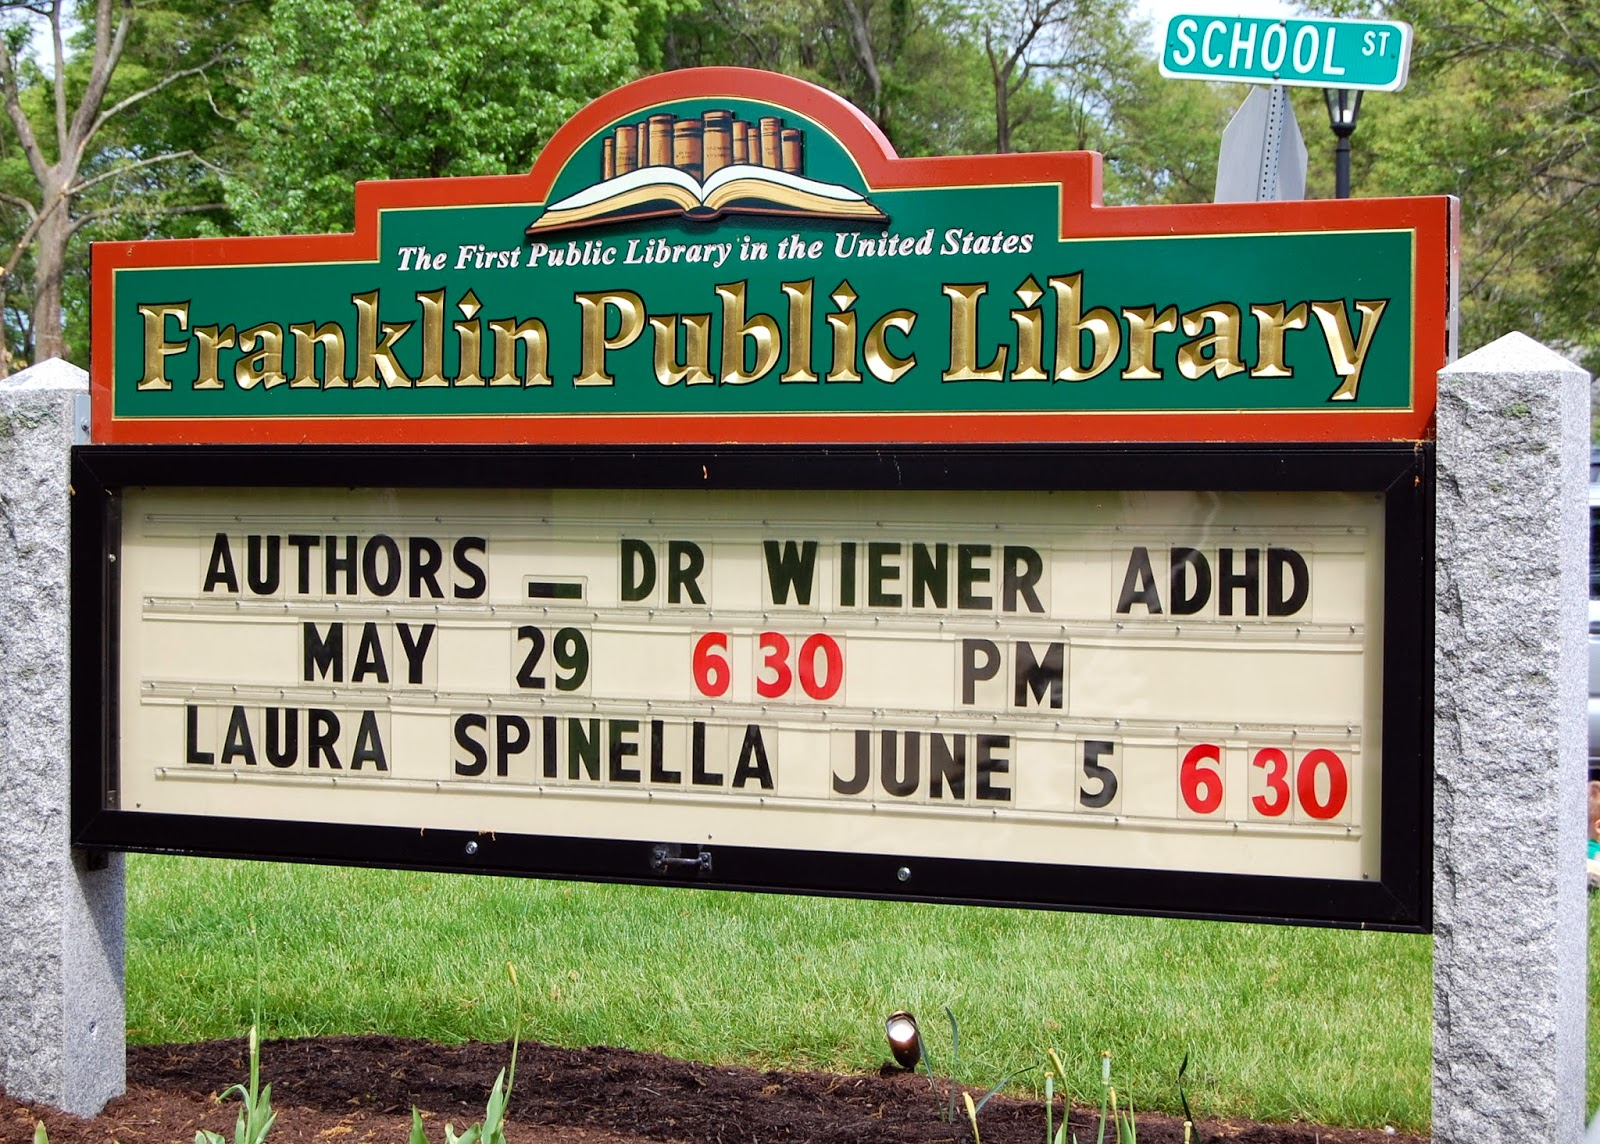 local author Laura Spinella will speak June 5th